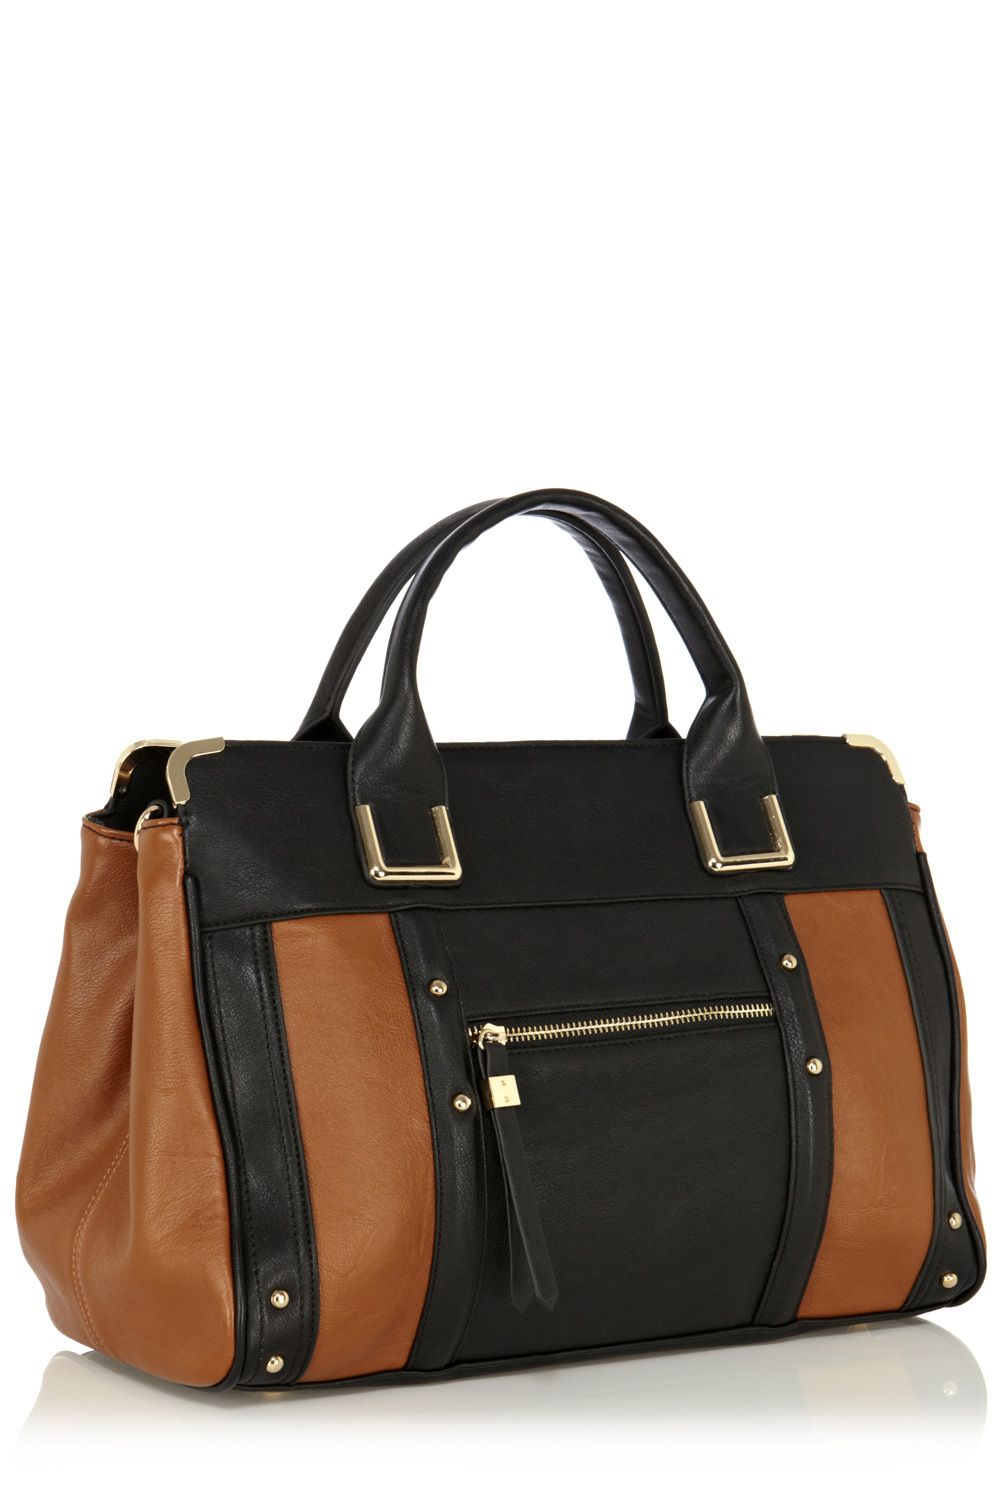 Taylor triple compt bag